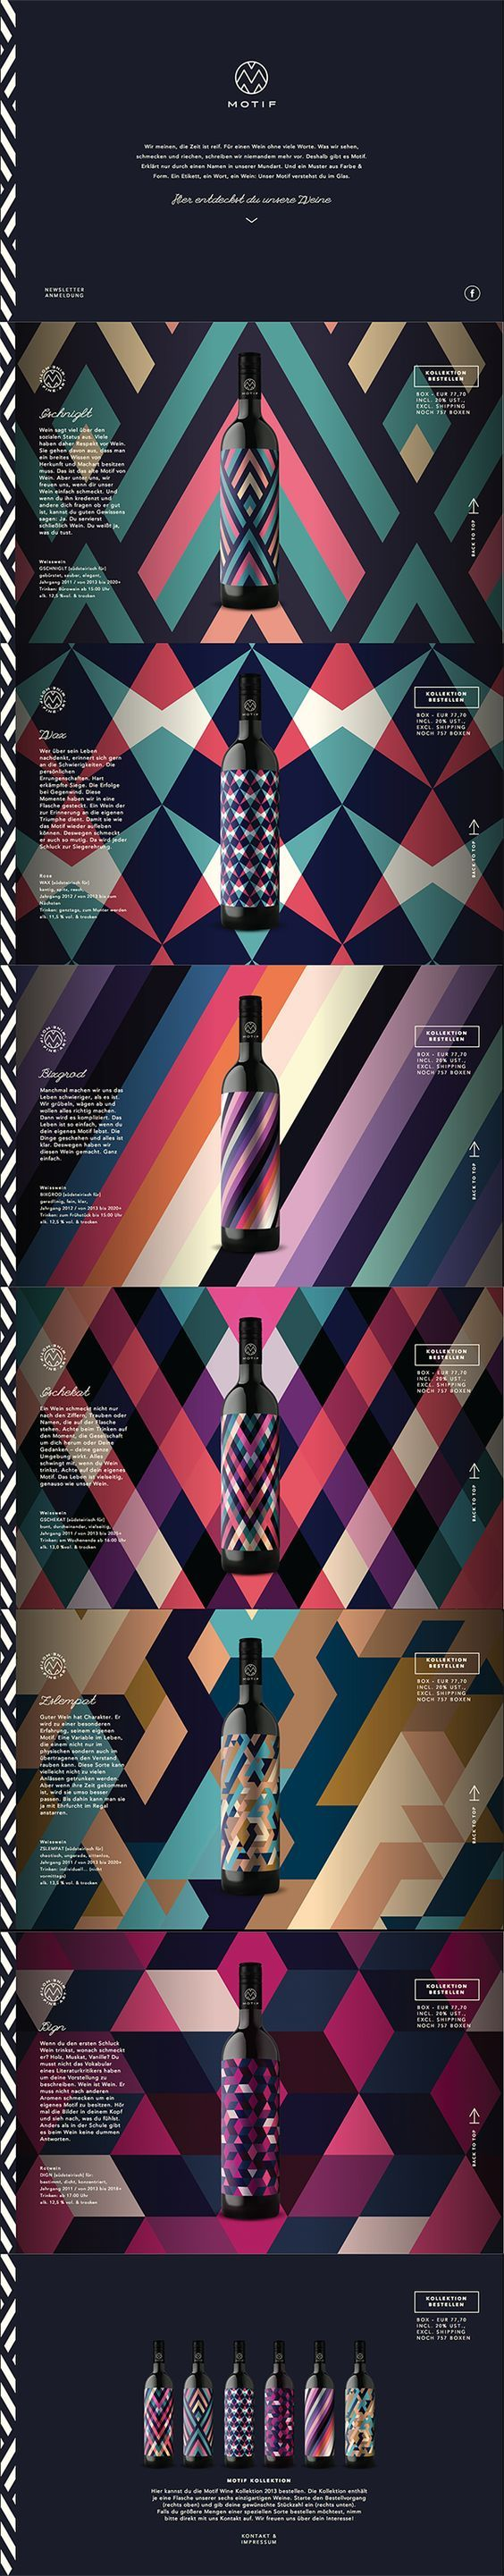 Vertical scroll, wine website Colour spectrums for liquors. Vertical, angular, they represent speed and uncomfortability. Could it mean you're gonna get drunken much faster? or feel much better?: